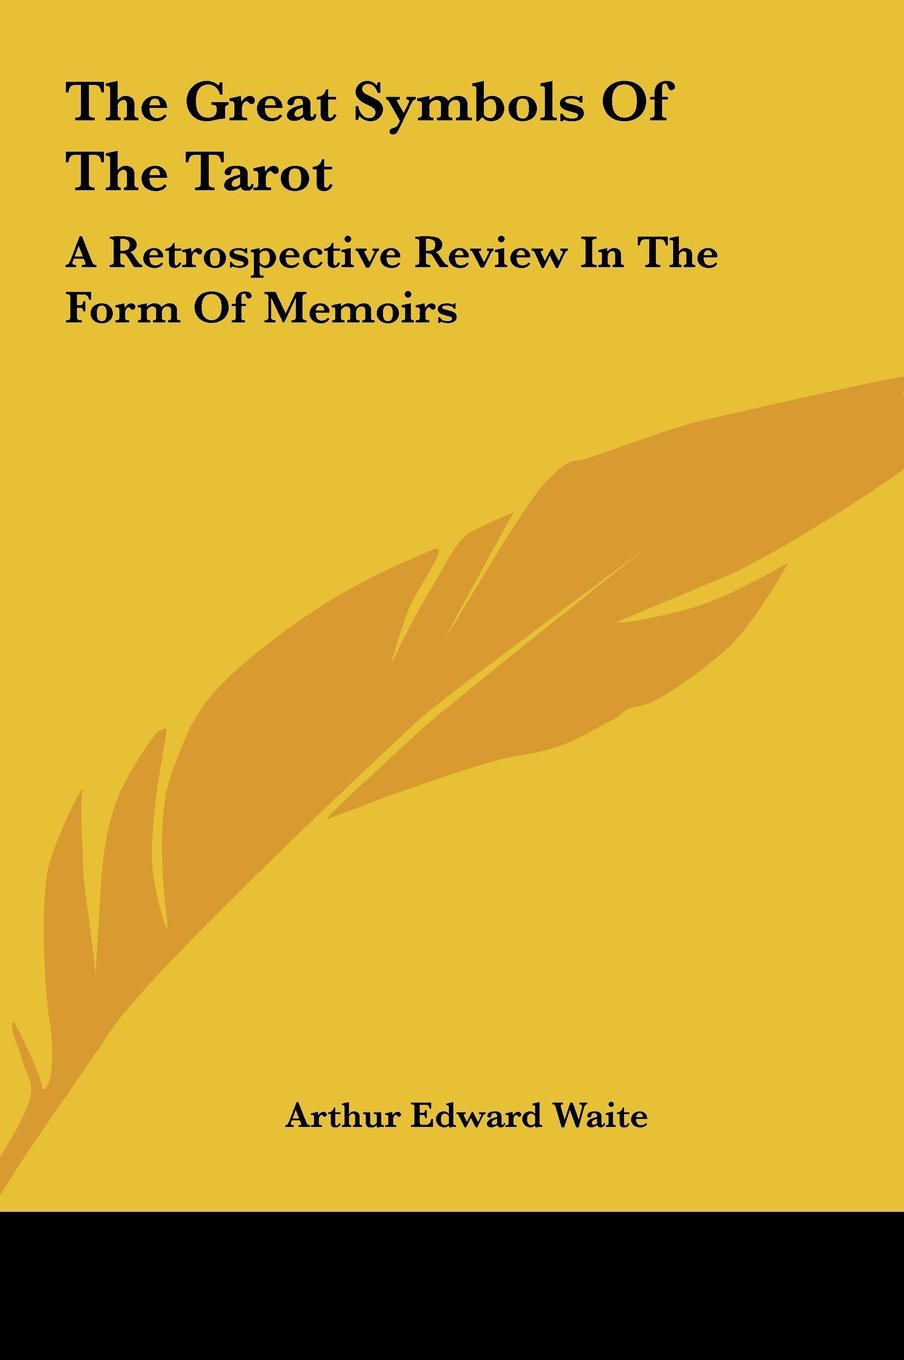 Download The Great Symbols Of The Tarot: A Retrospective Review In The Form Of Memoirs pdf epub